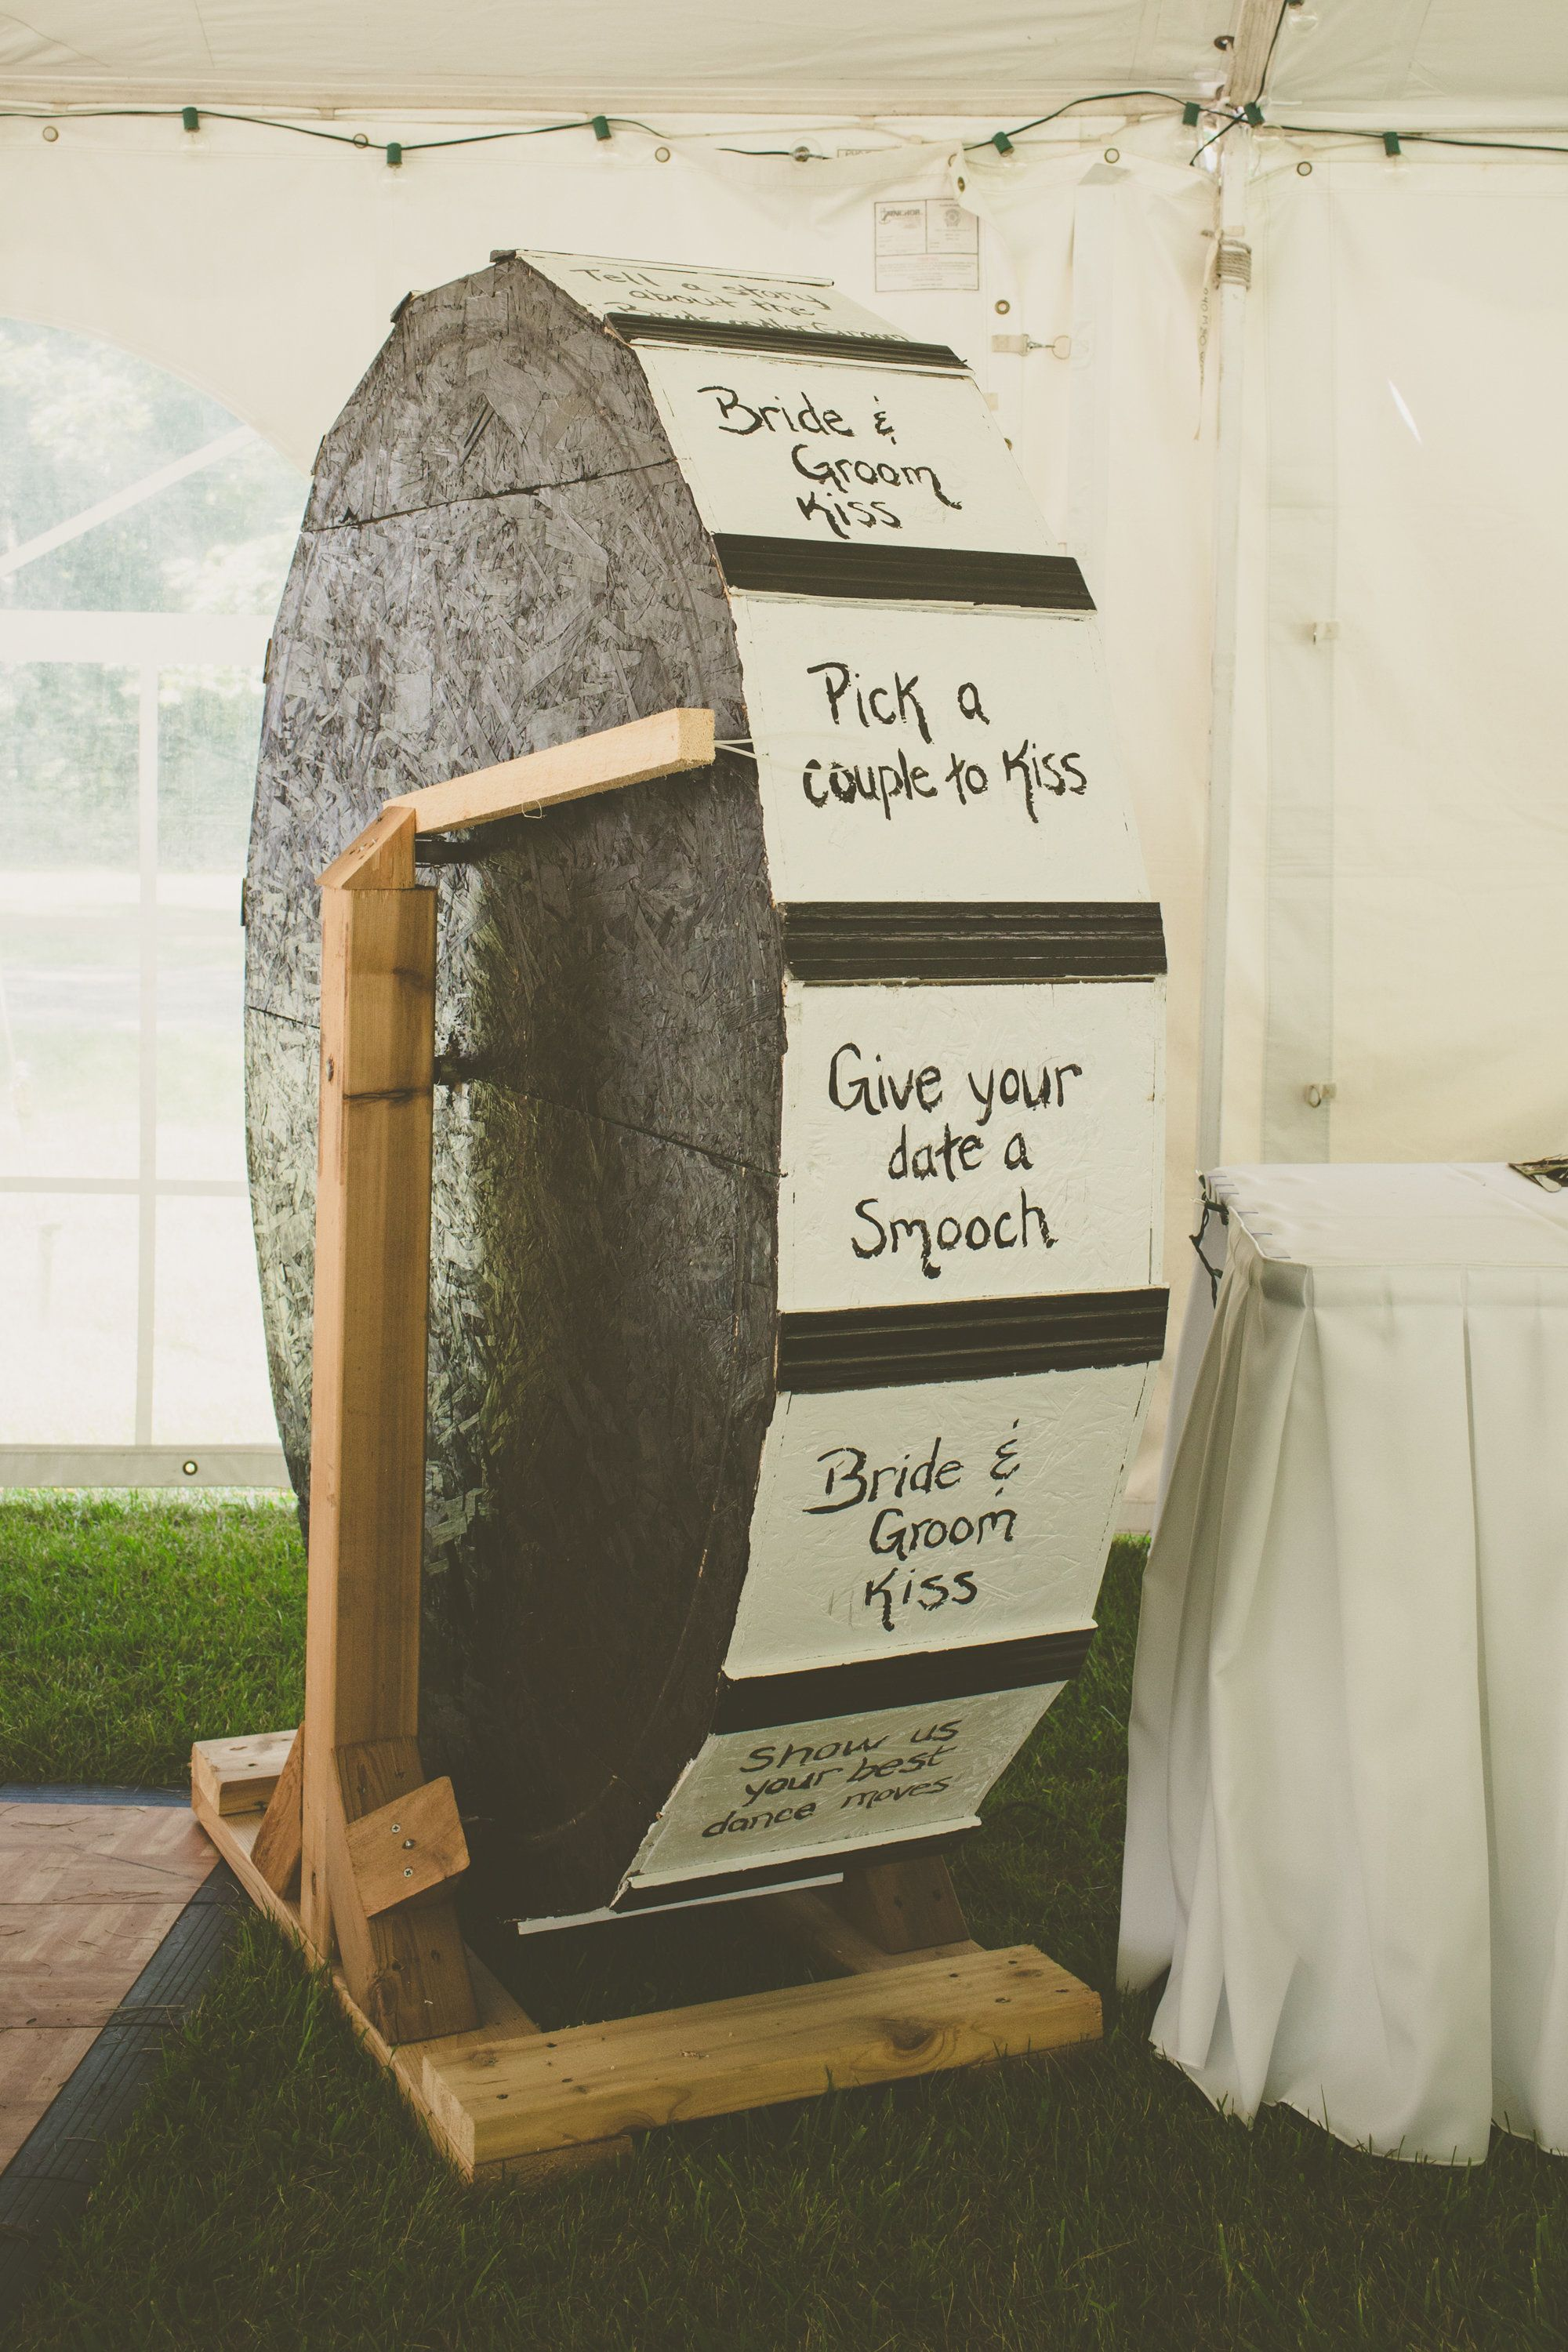 Wedding Games | 21 Awesome Wedding Games That Will Keep The Party Going Huffpost Life